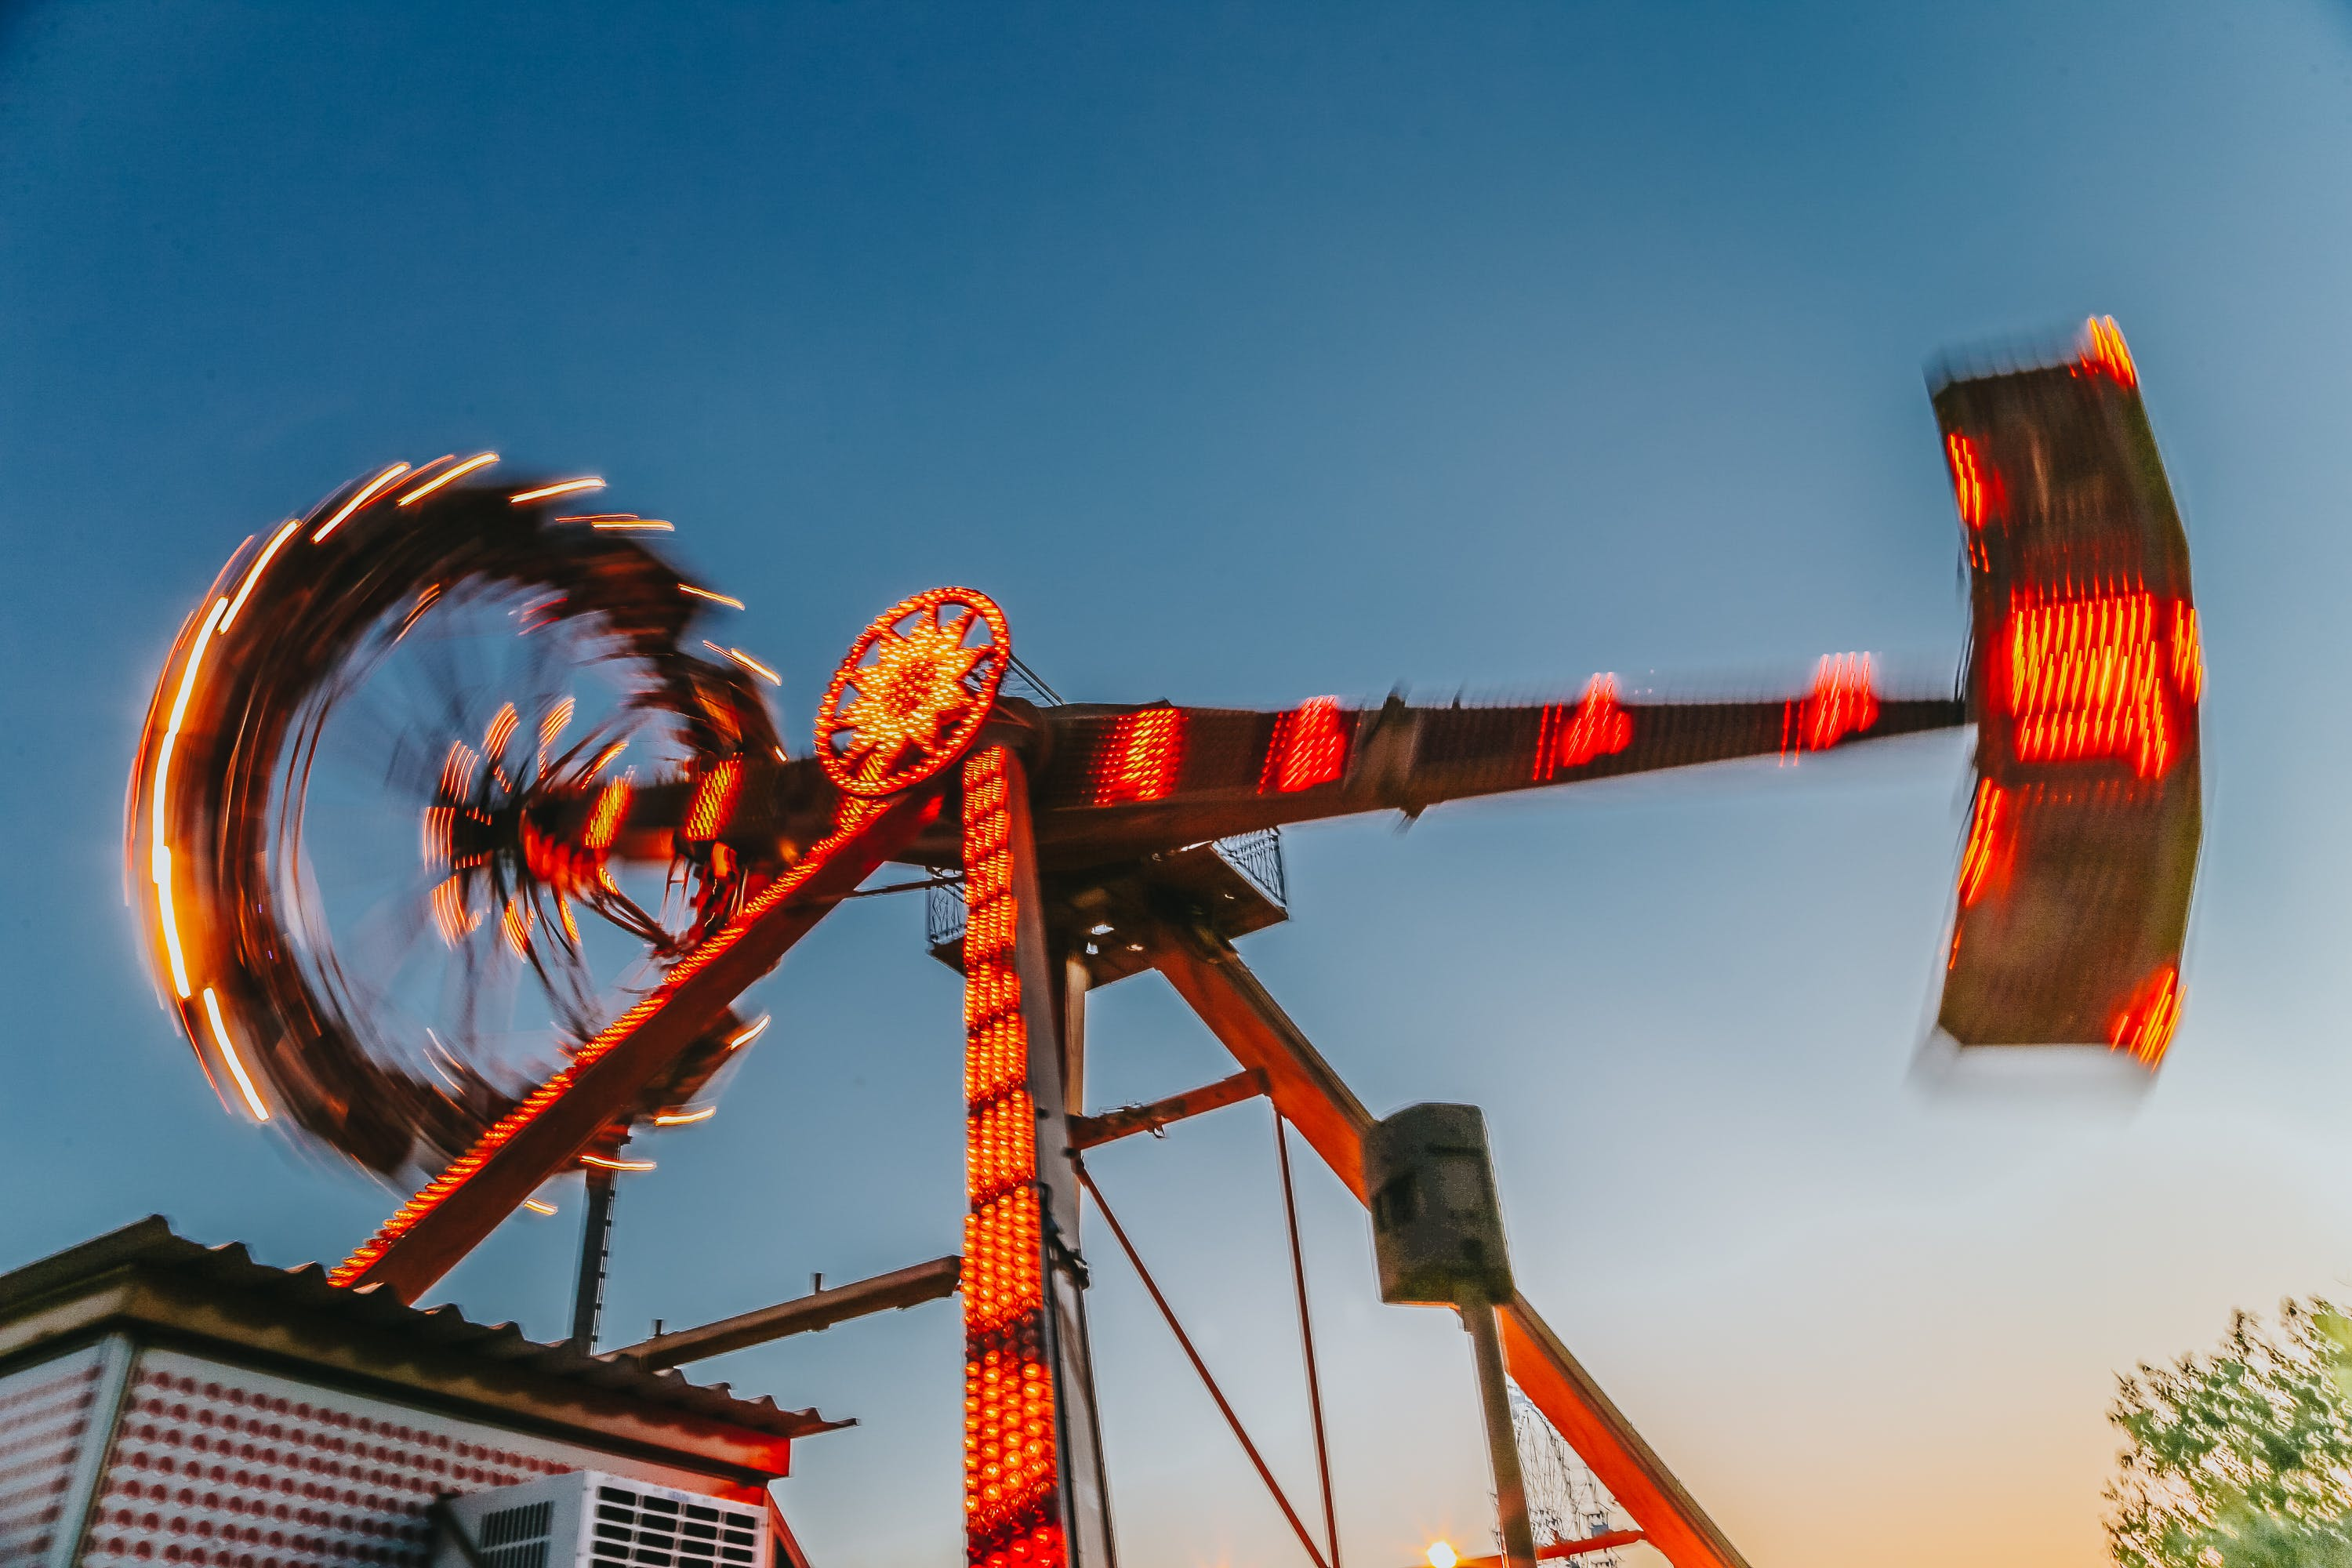 Low Angle Photography Of Amusement Ride